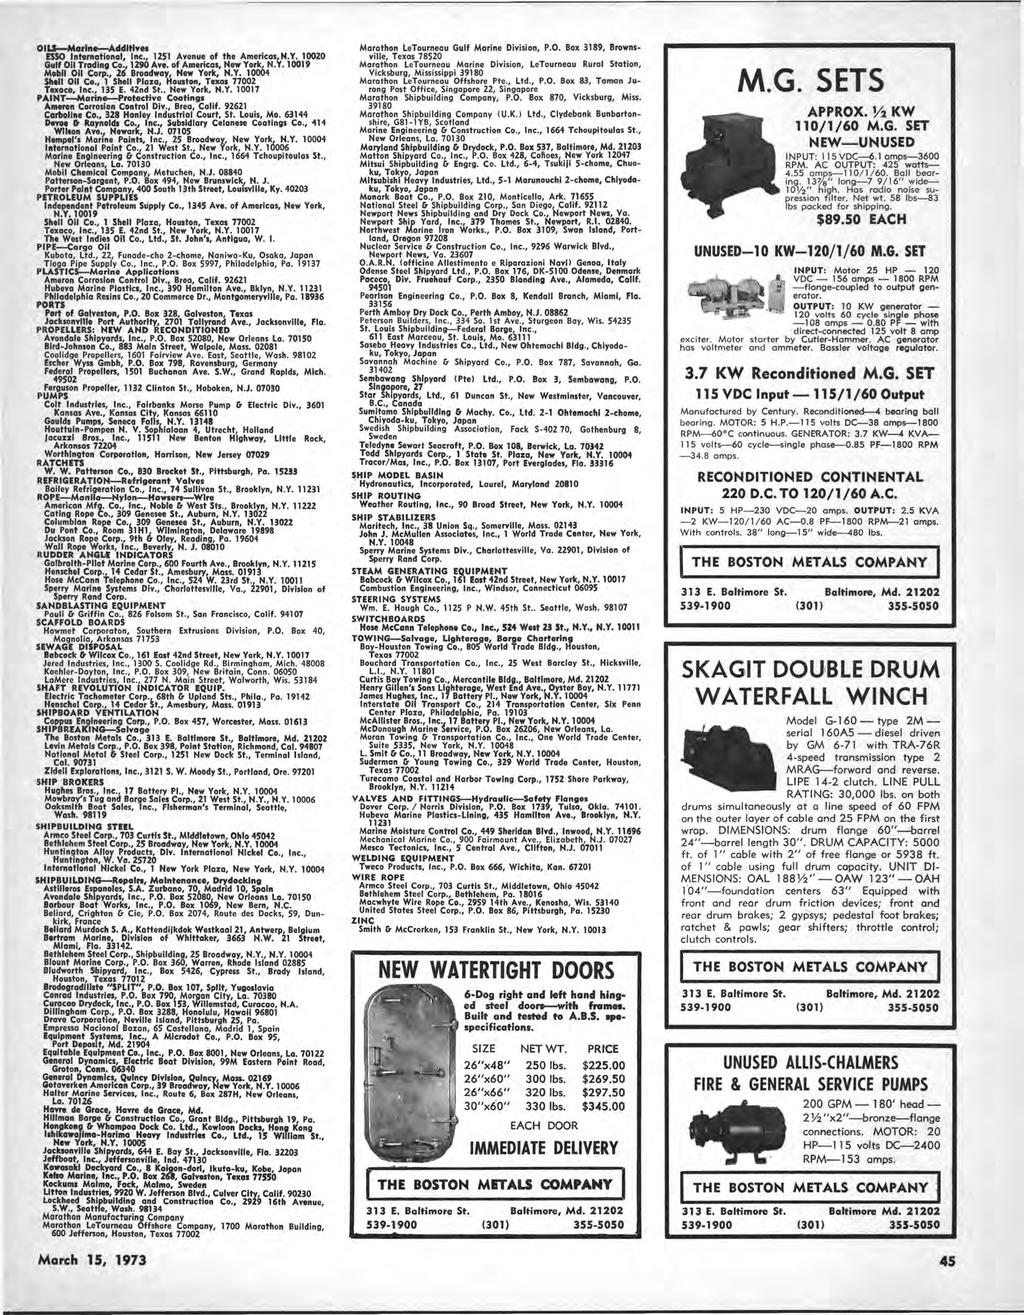 Maritime Reporter Engineering Wtte Hi Pdf Circuit Tester 80500 Volts Ac Dc Oils Marine Additives Esso International Inc 1251 Avenue Of The Americas Ny